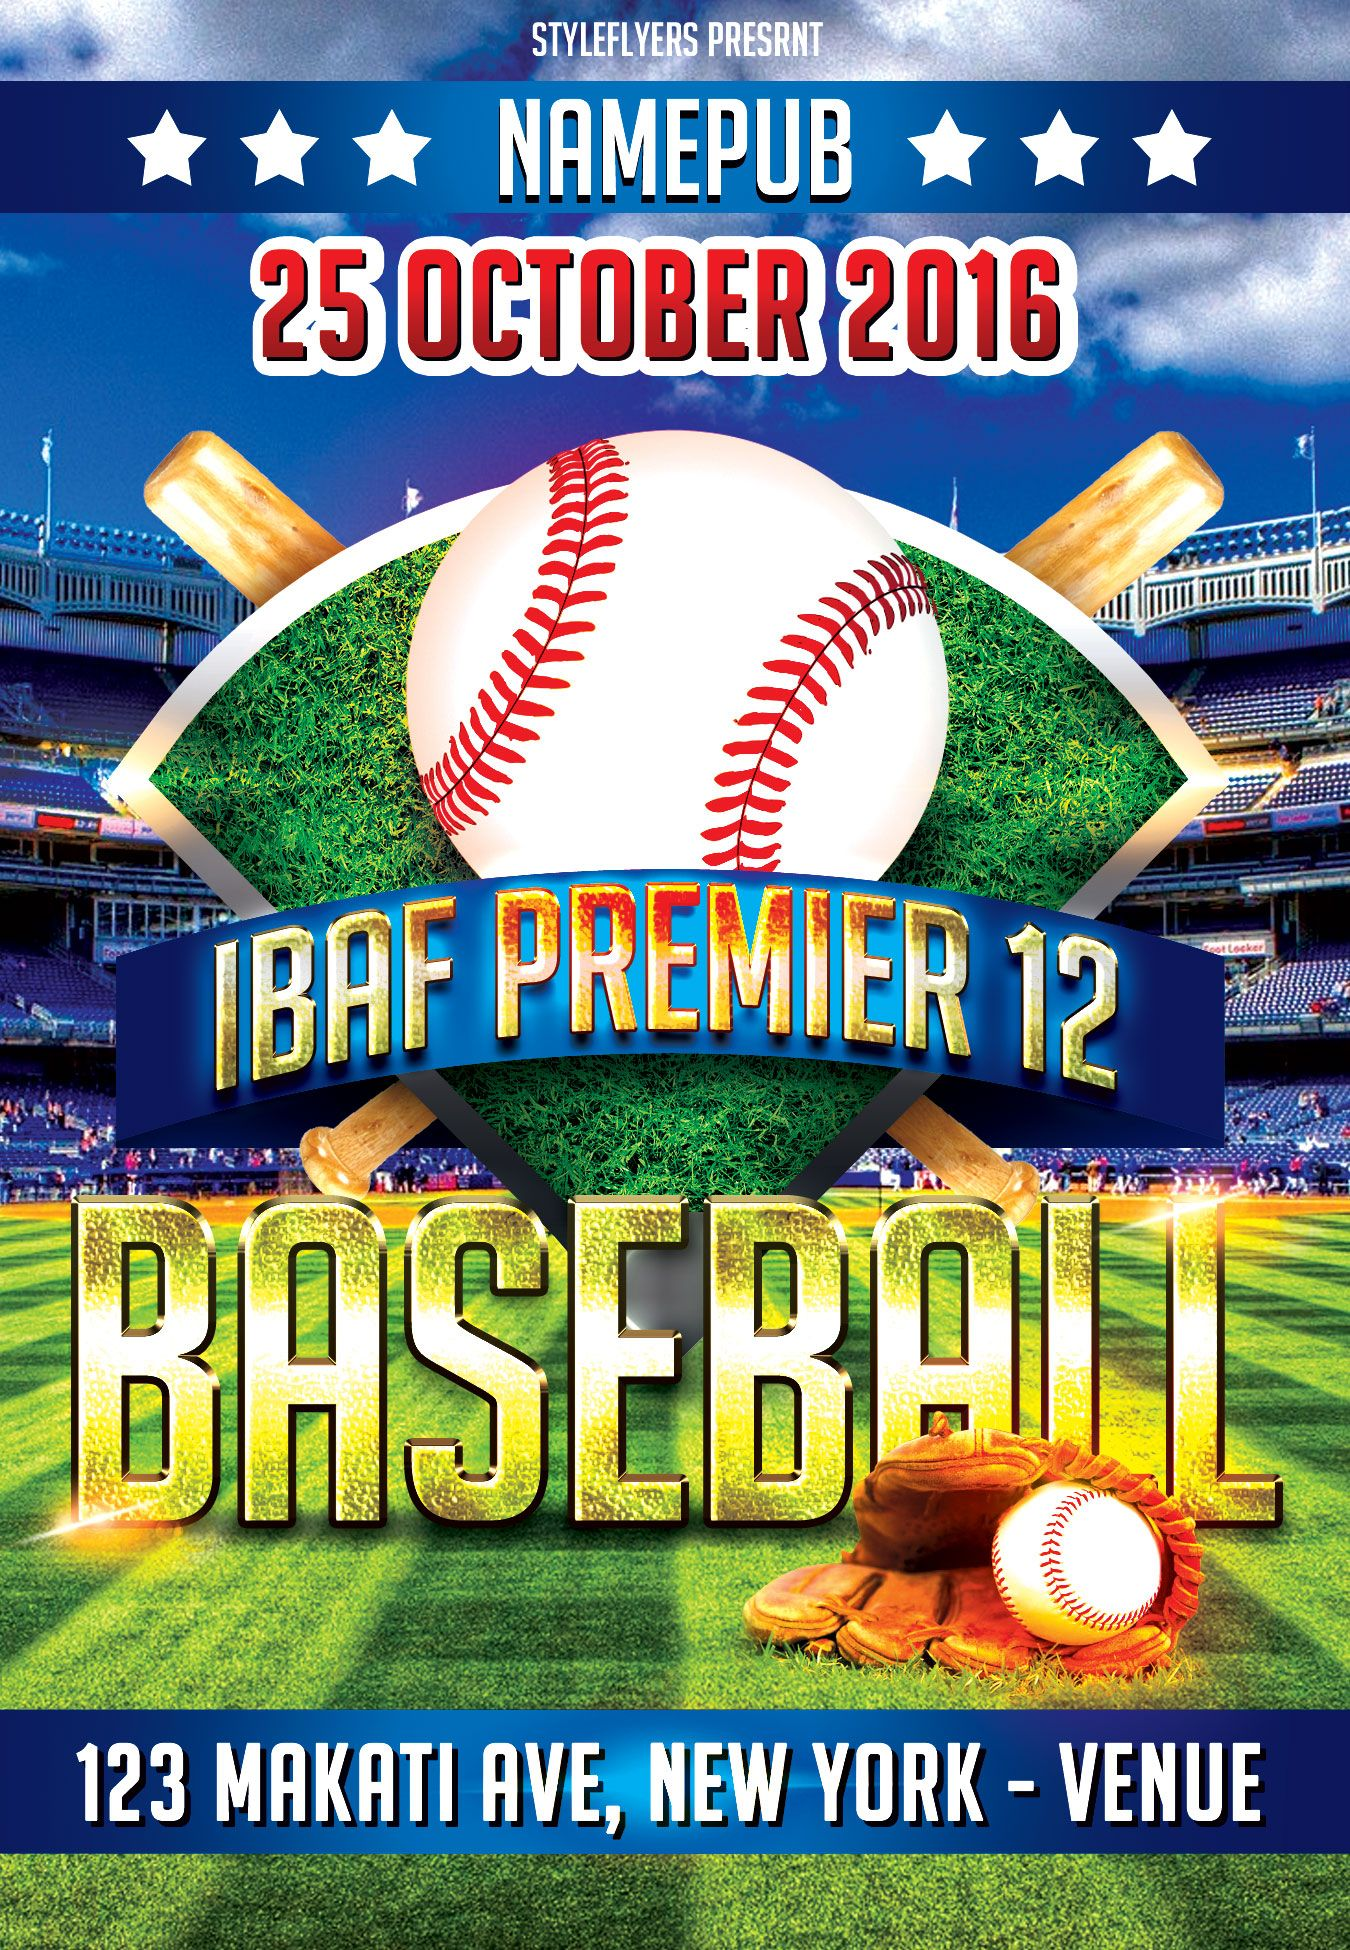 Free baseball psd flyer template is waiting for you Download it – Baseball Flyer